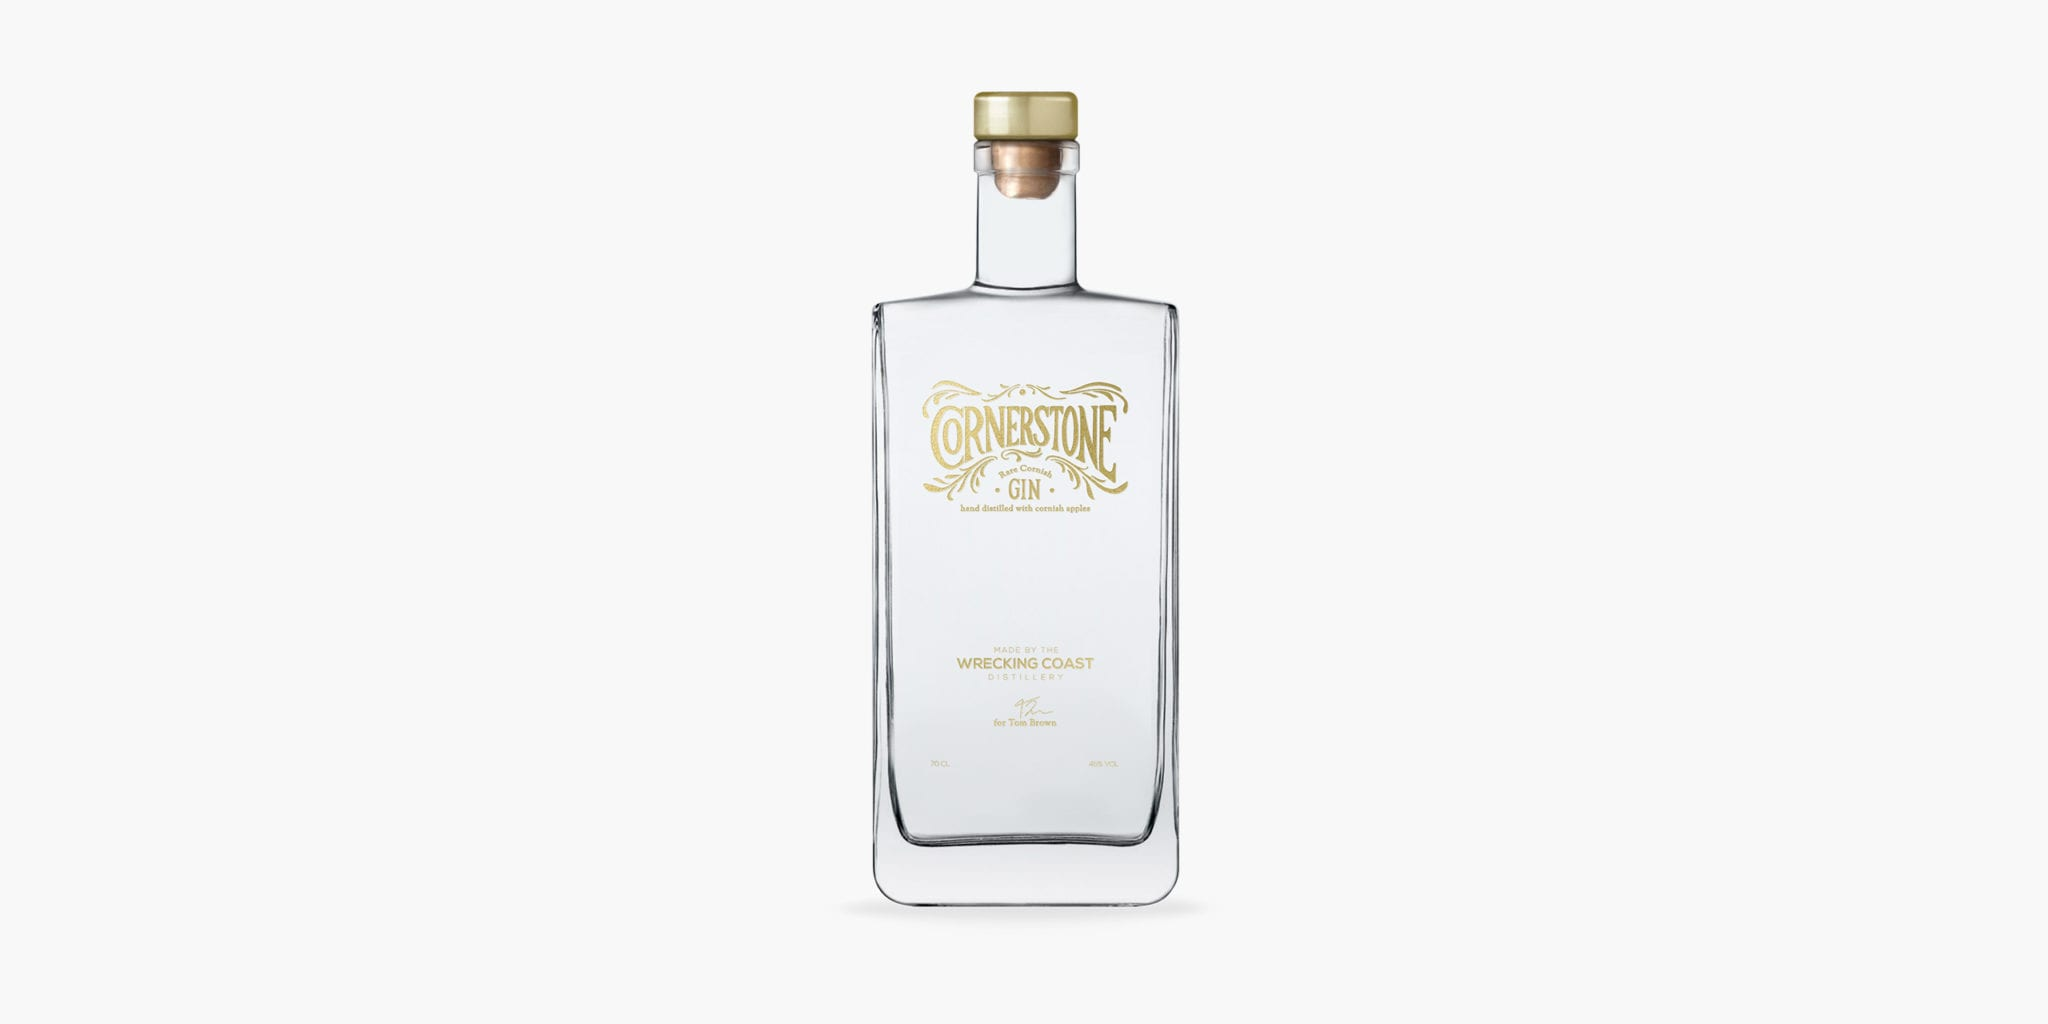 A simple pack shot of the Cornerstone gin bottle and label design